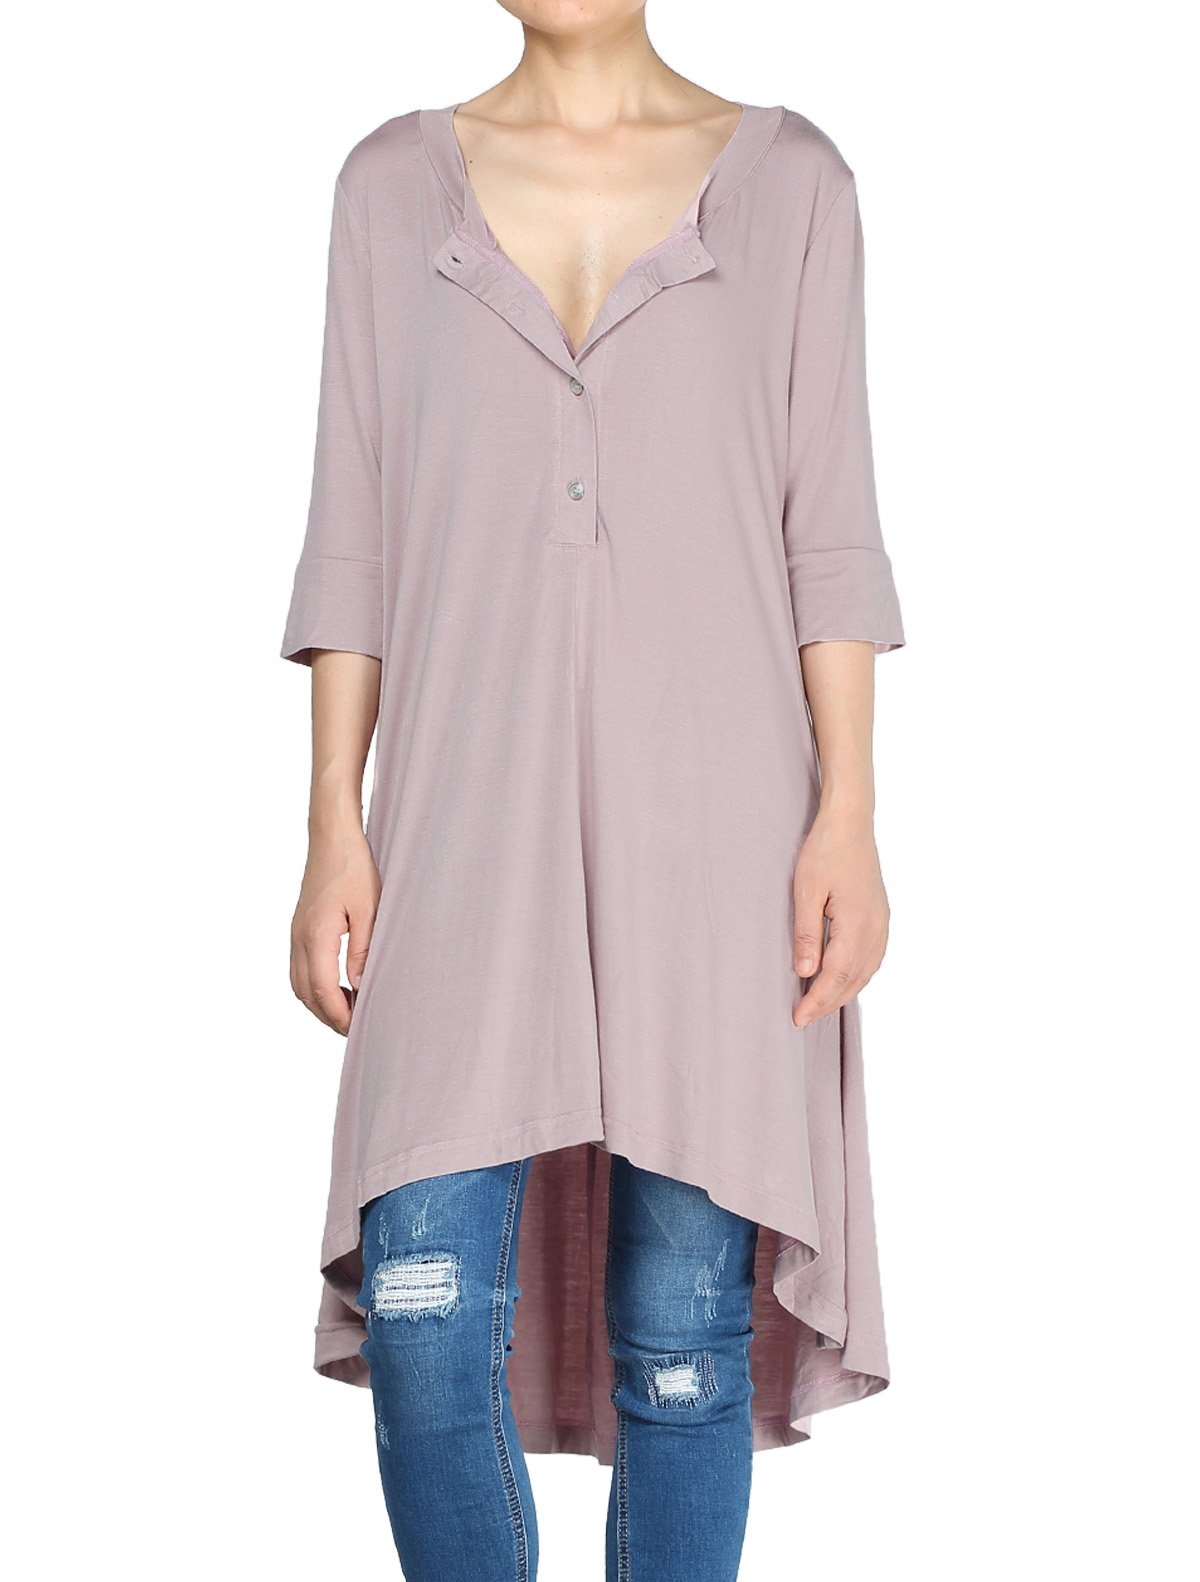 Mordenmiss Women's New Half Sleeve High Low Loose Tunic Tops Pink-L